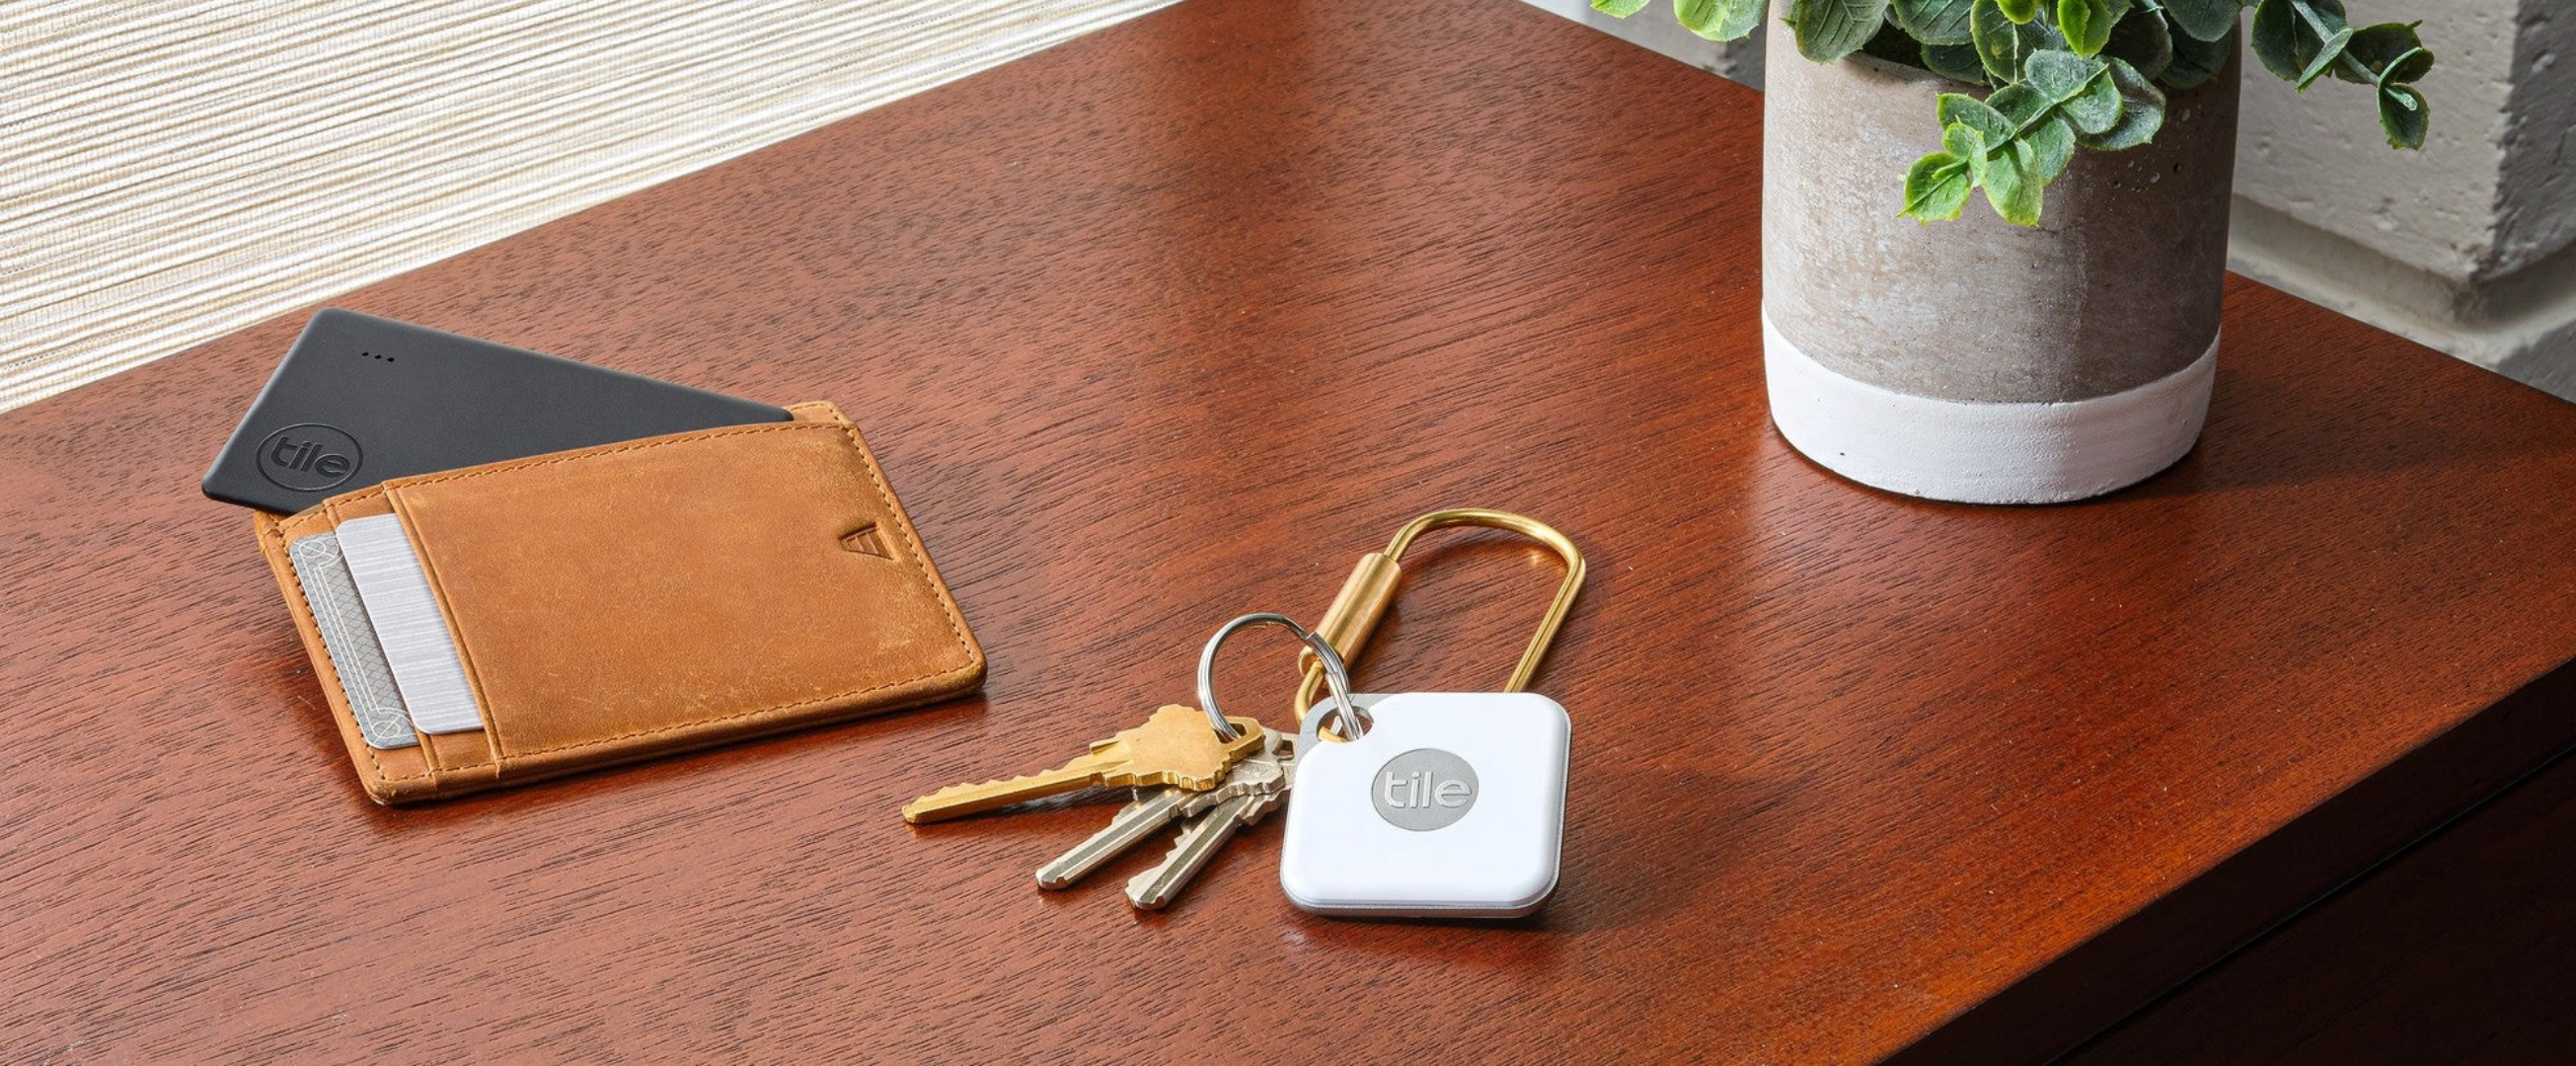 Tile's method for finding lost keys at home is easy